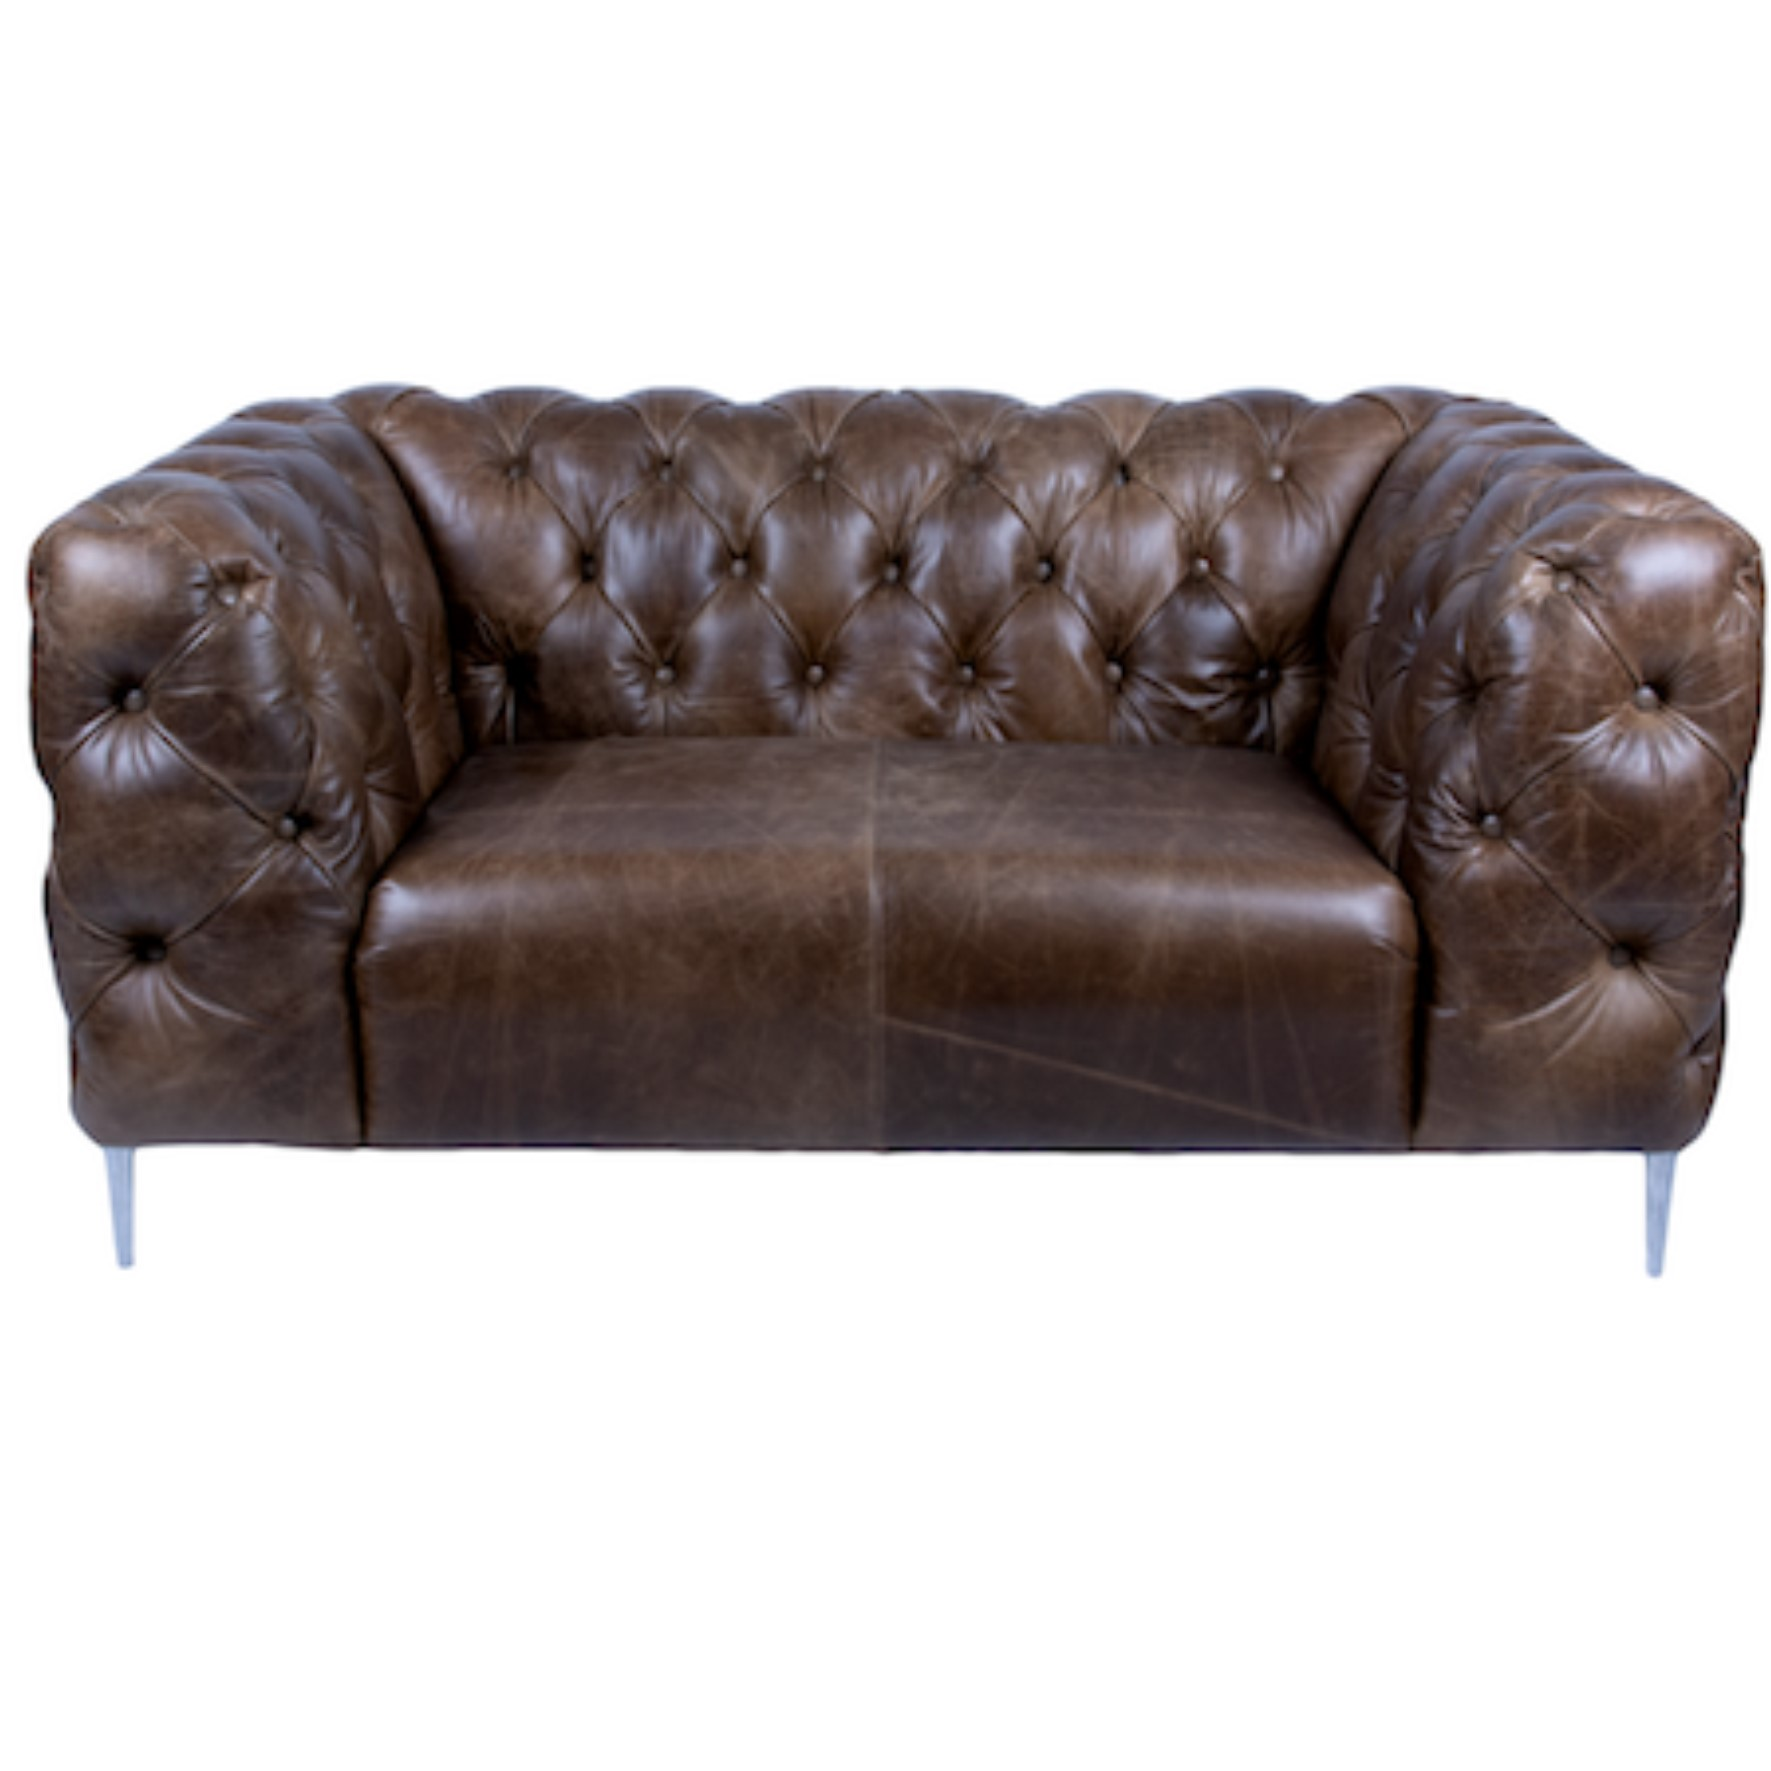 Rocco Sofa Collection